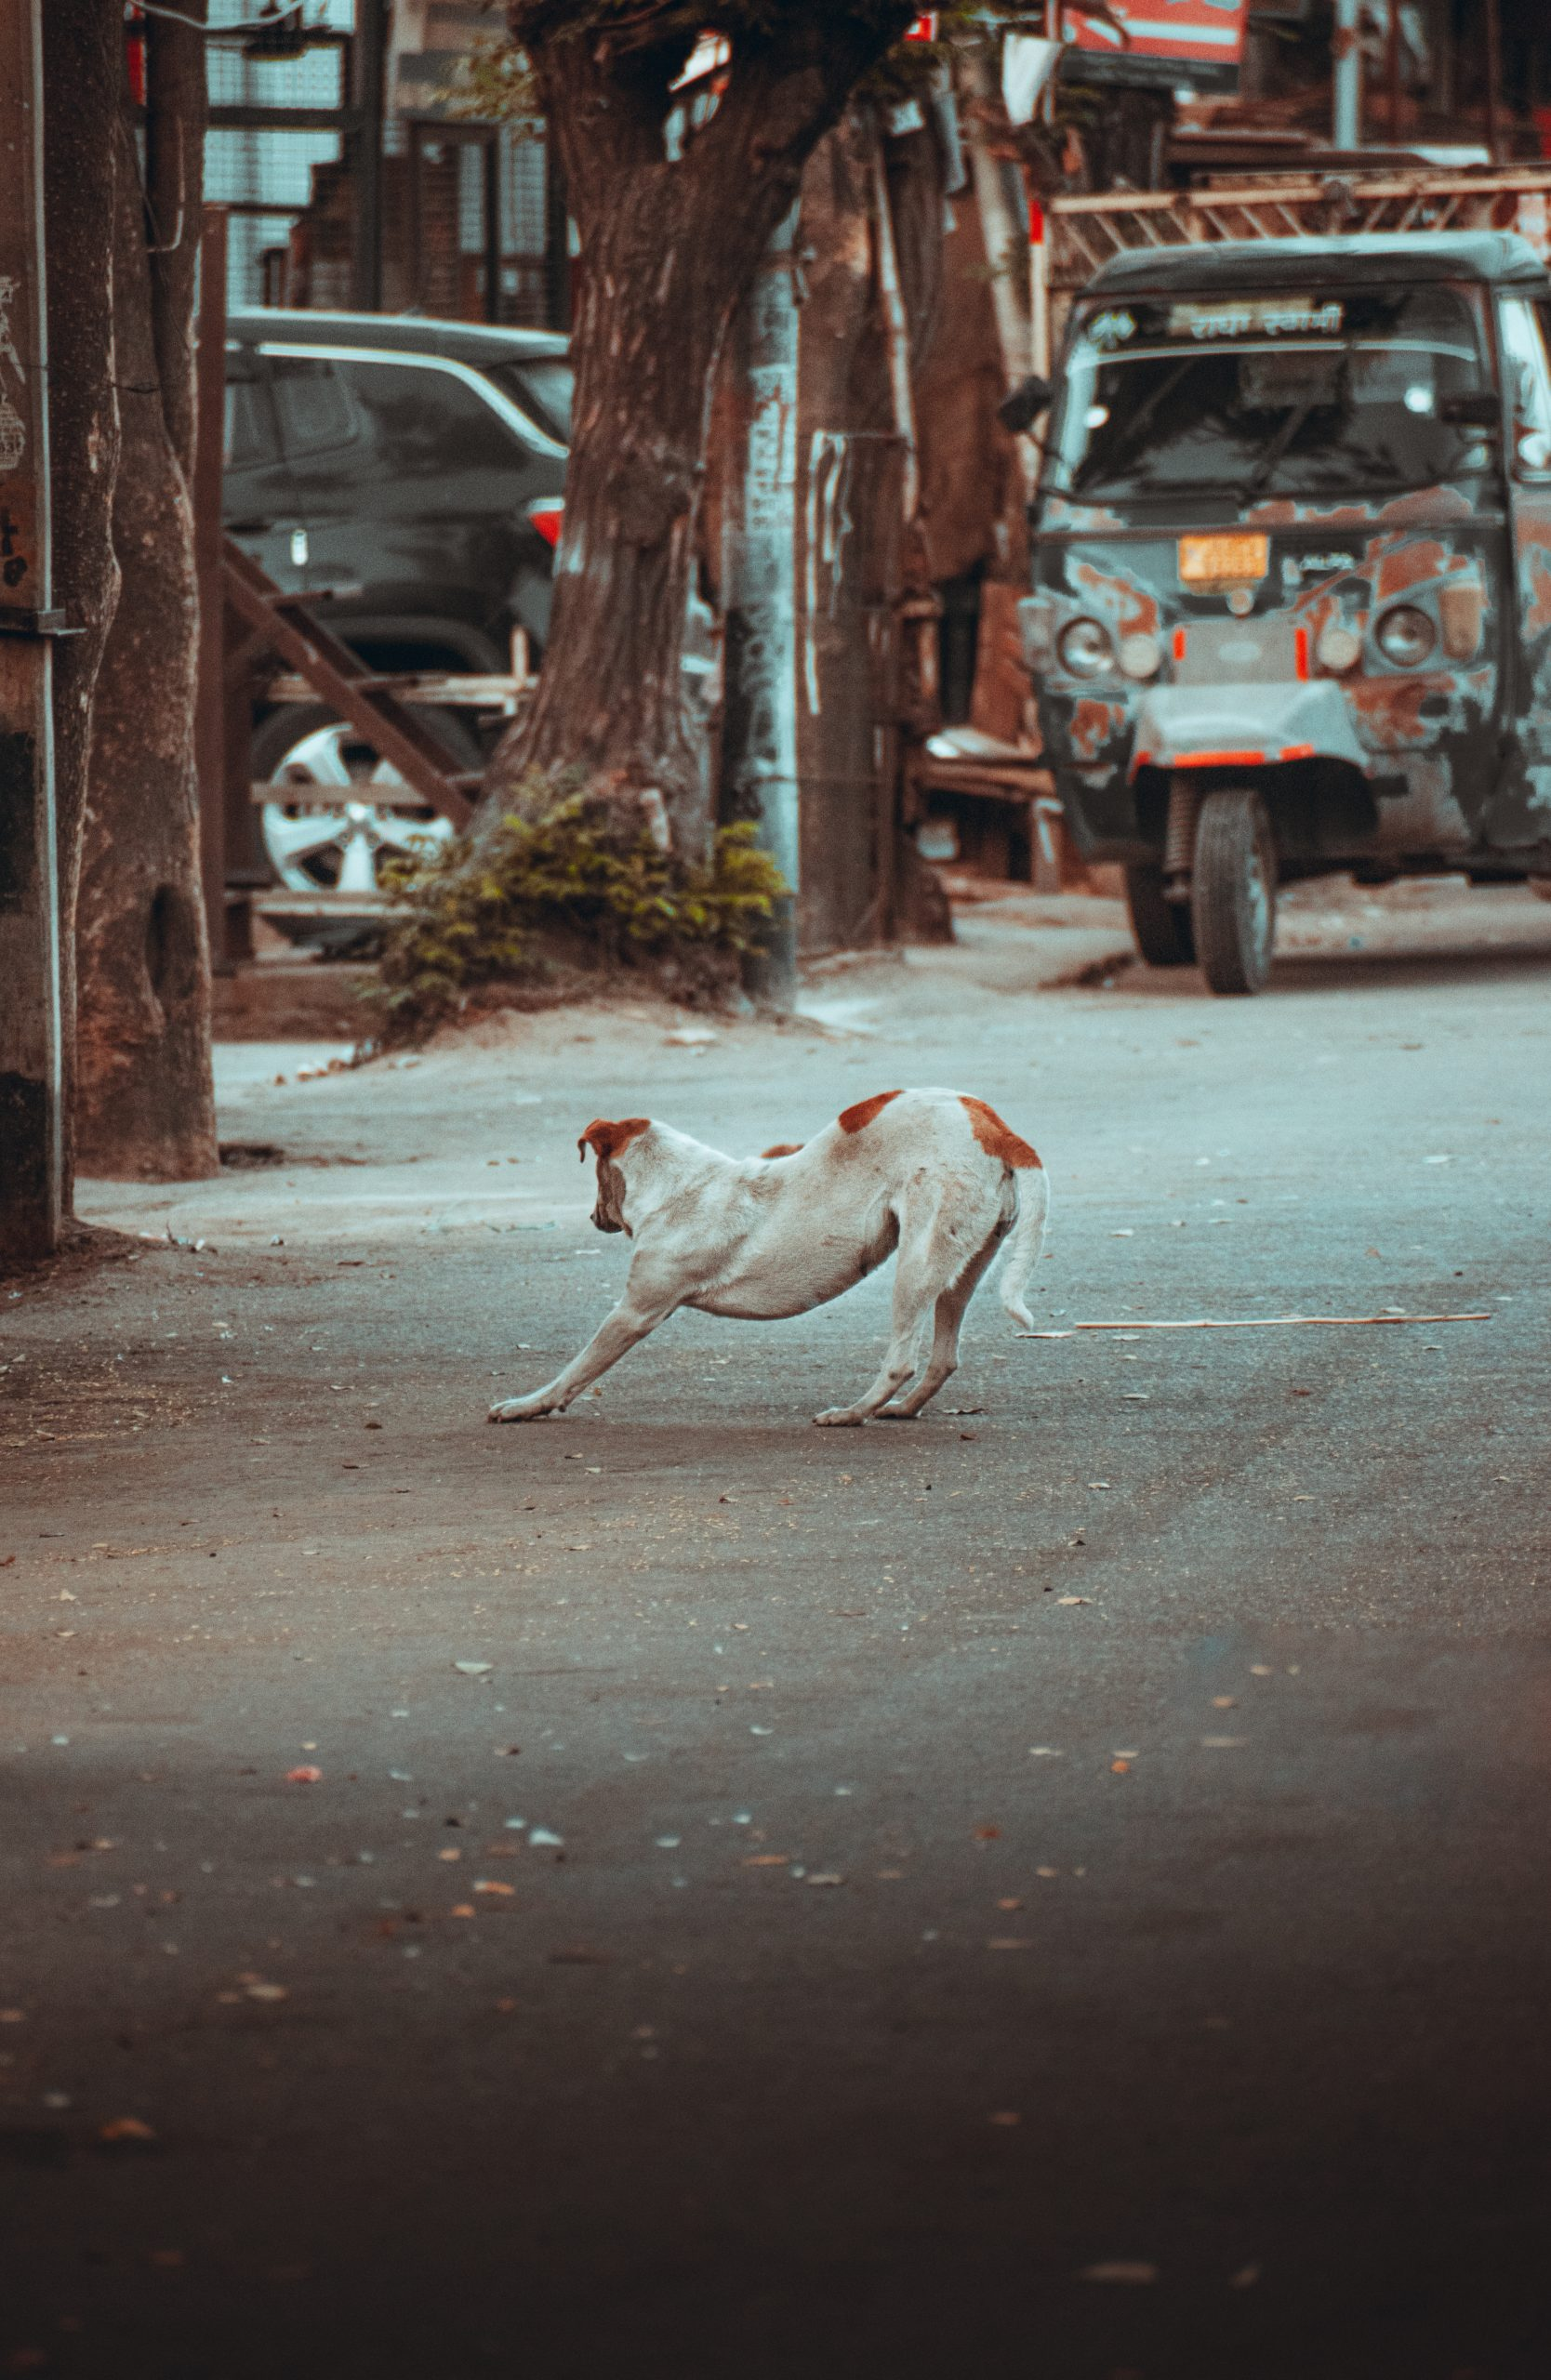 A dog on a road